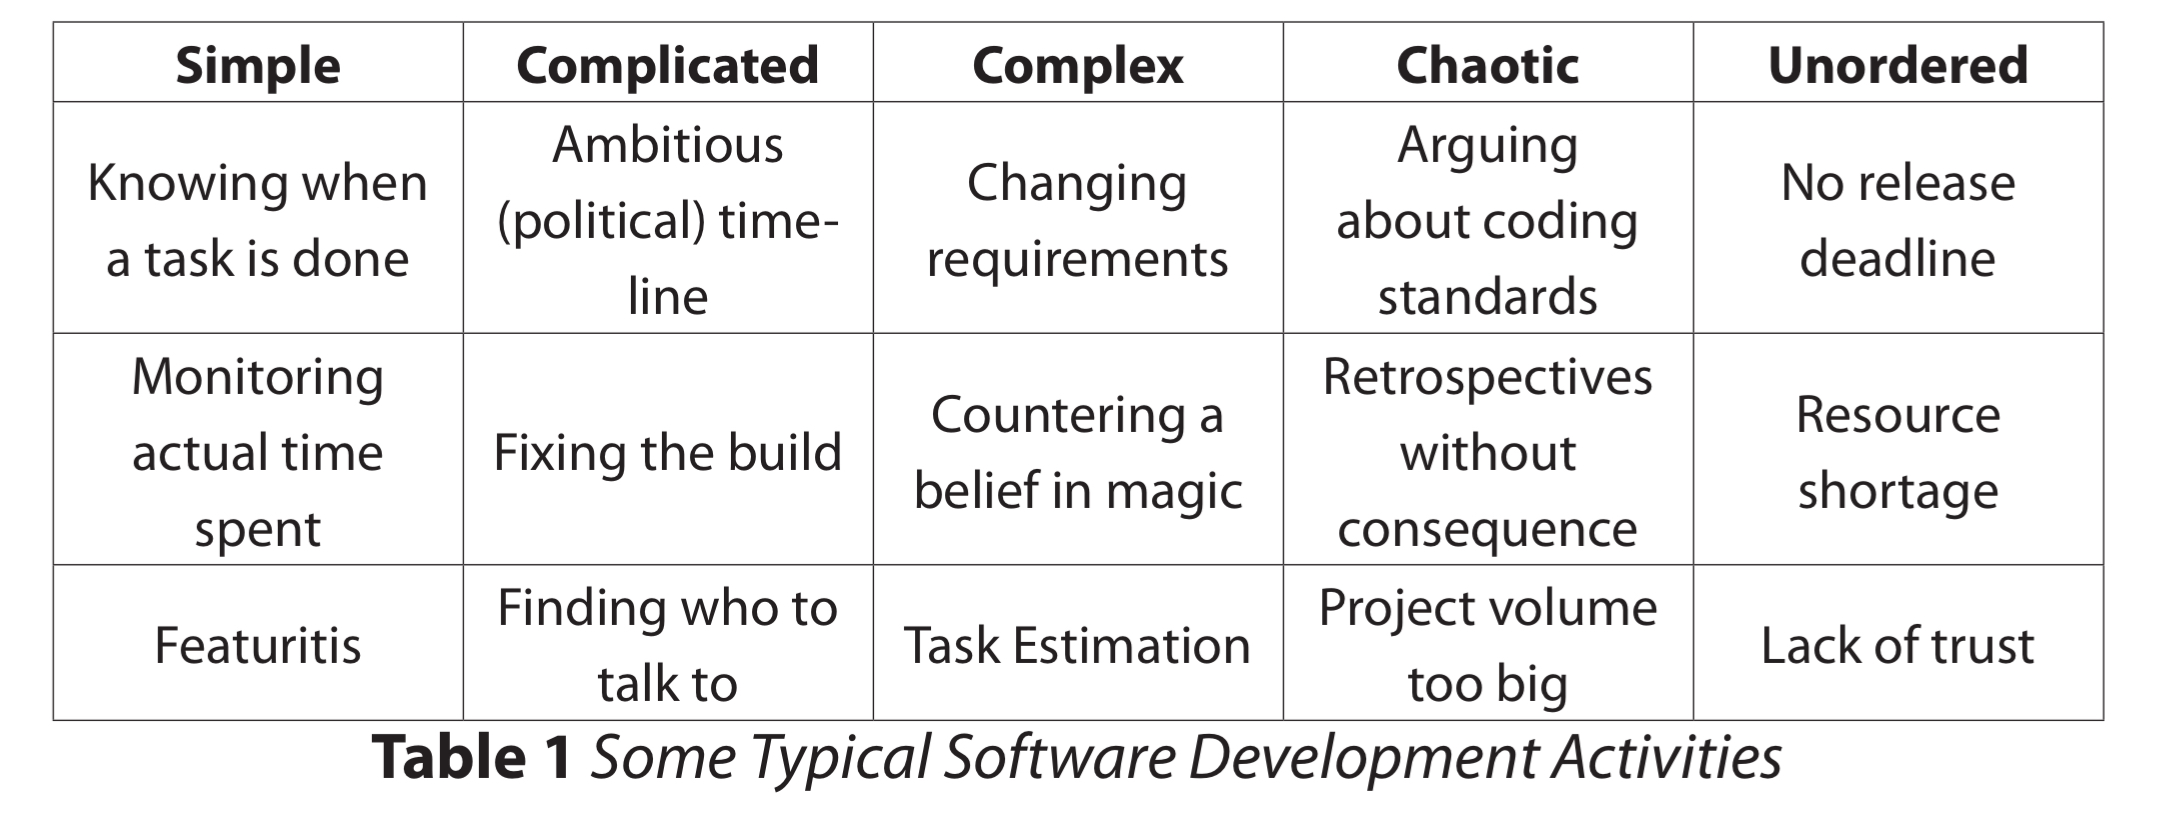 Software Agility Table